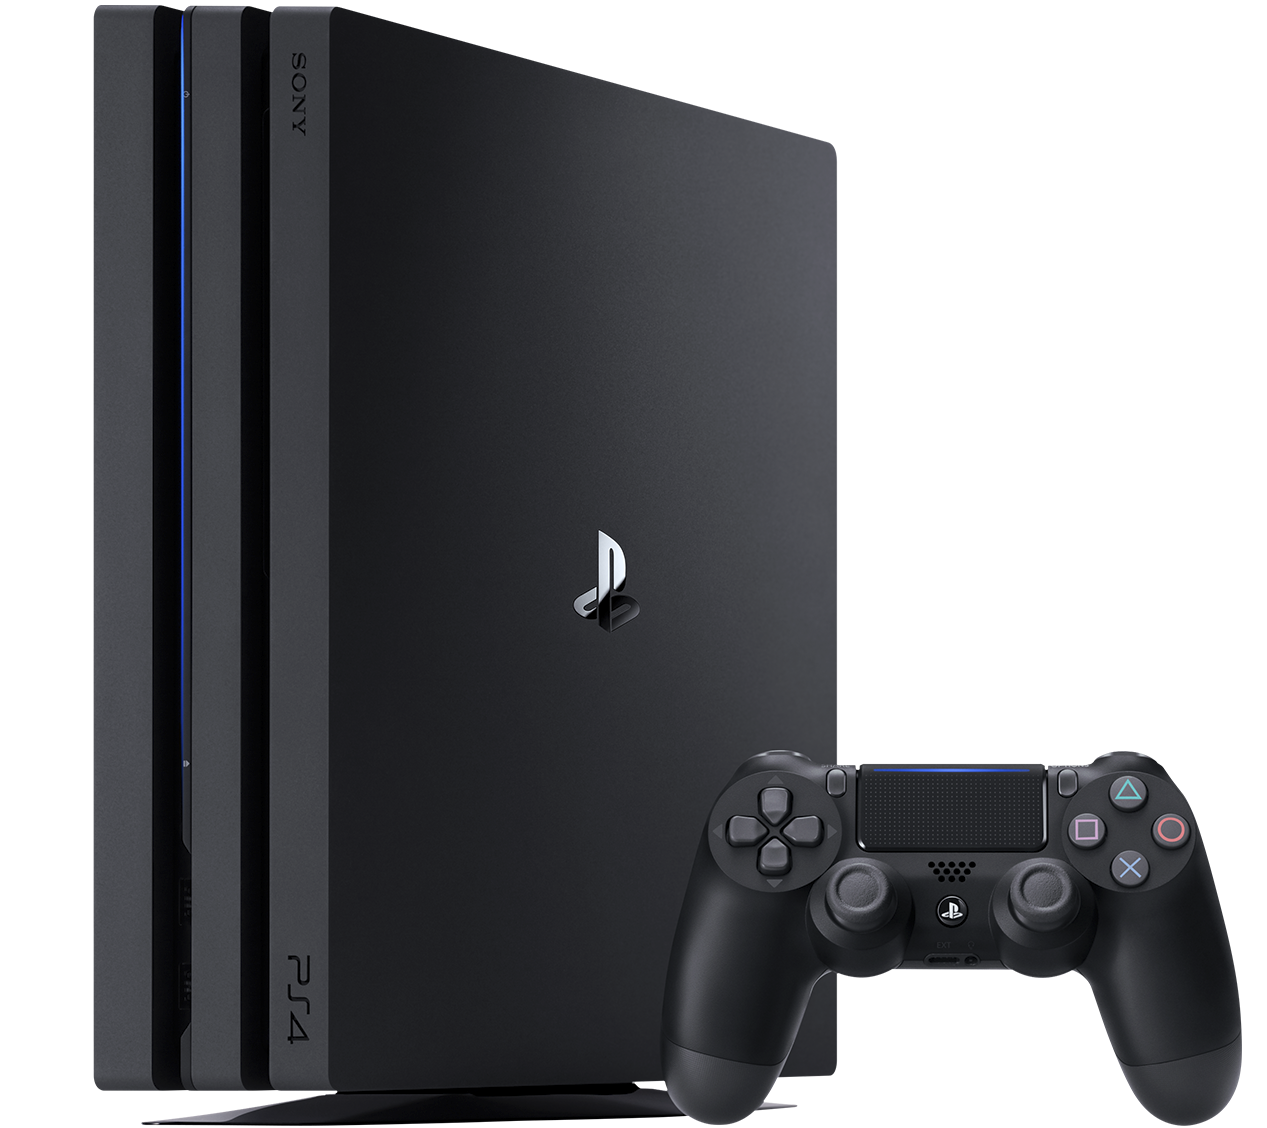 PS4 Pro console and controller